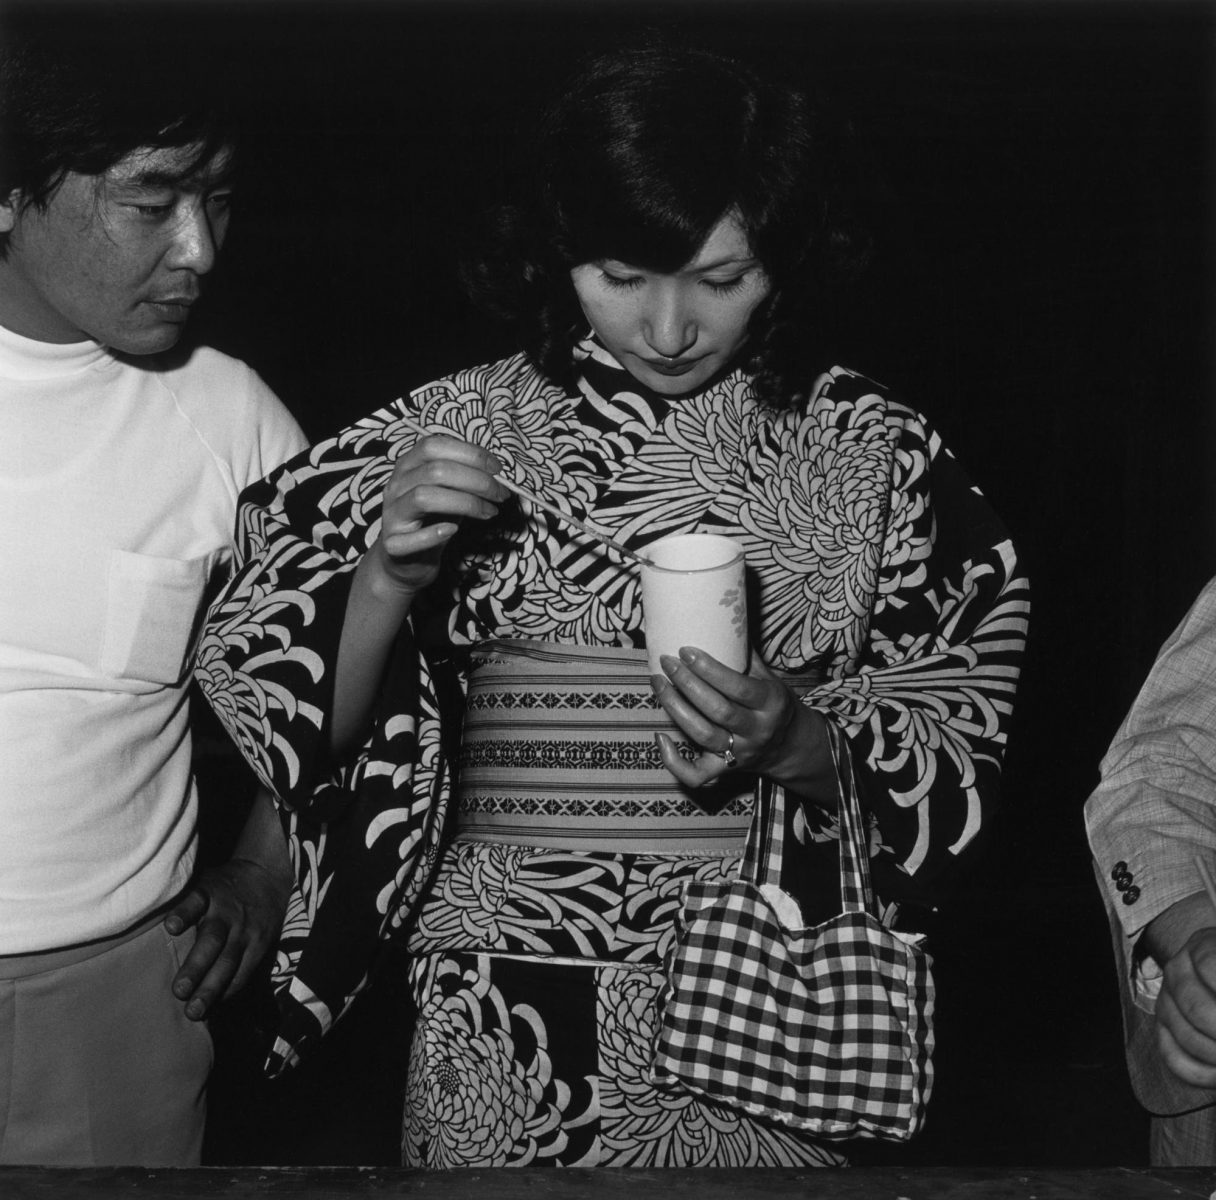 black and white portrait of a woman and a man by Issei Suda